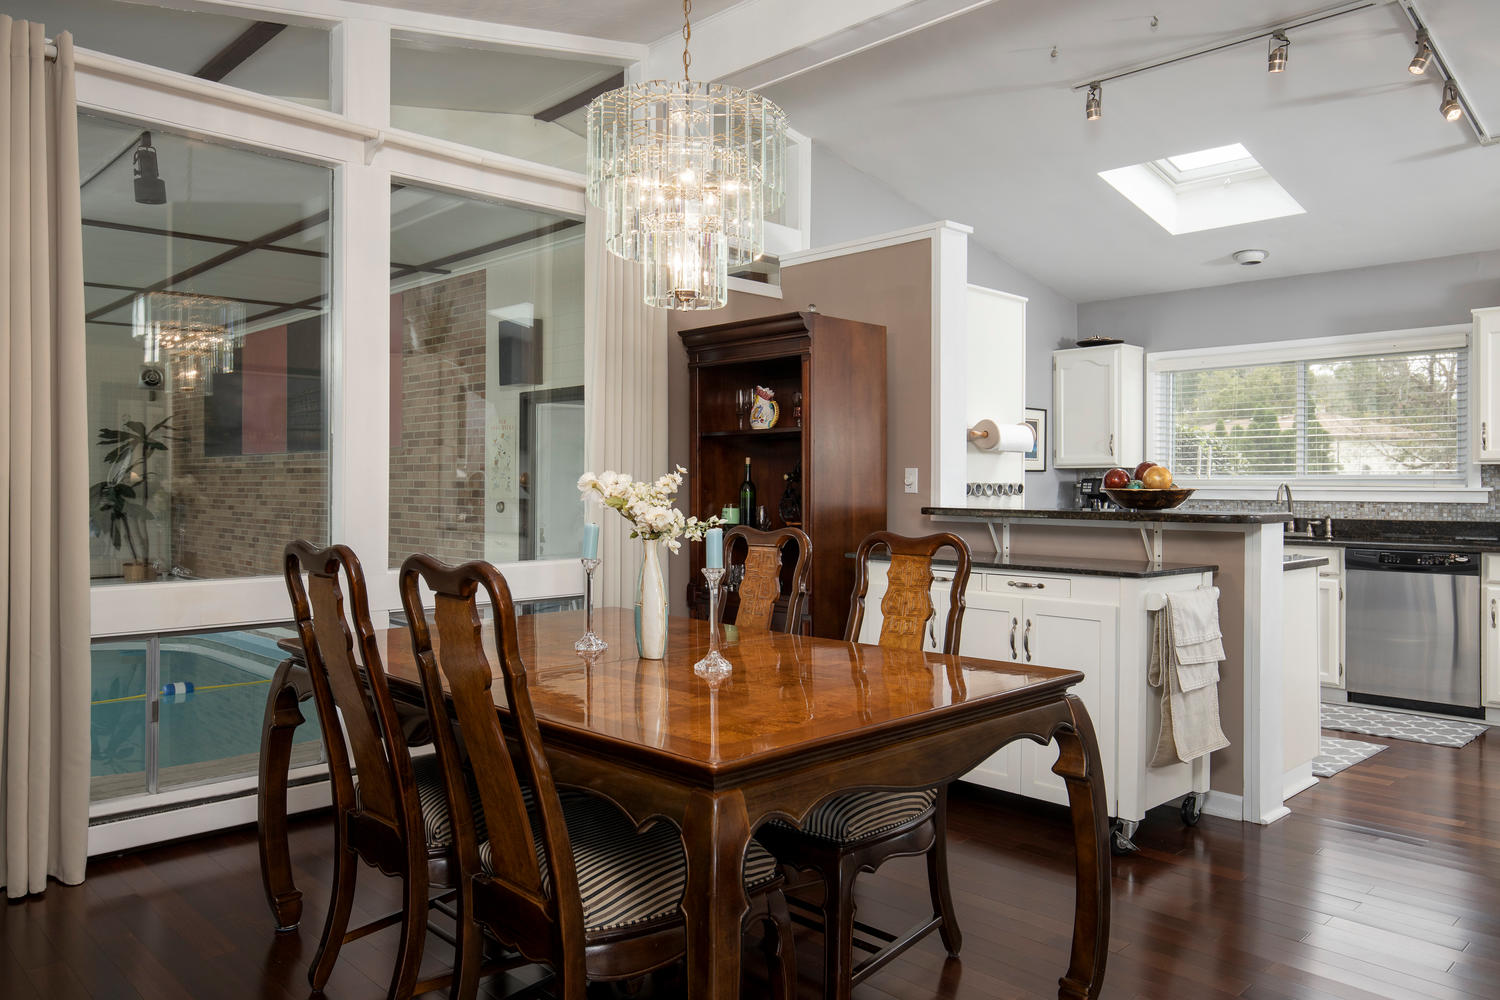 5258 Armor Duells Rd Orchard-large-007-015-Dining Room-1500×1000-72dpi